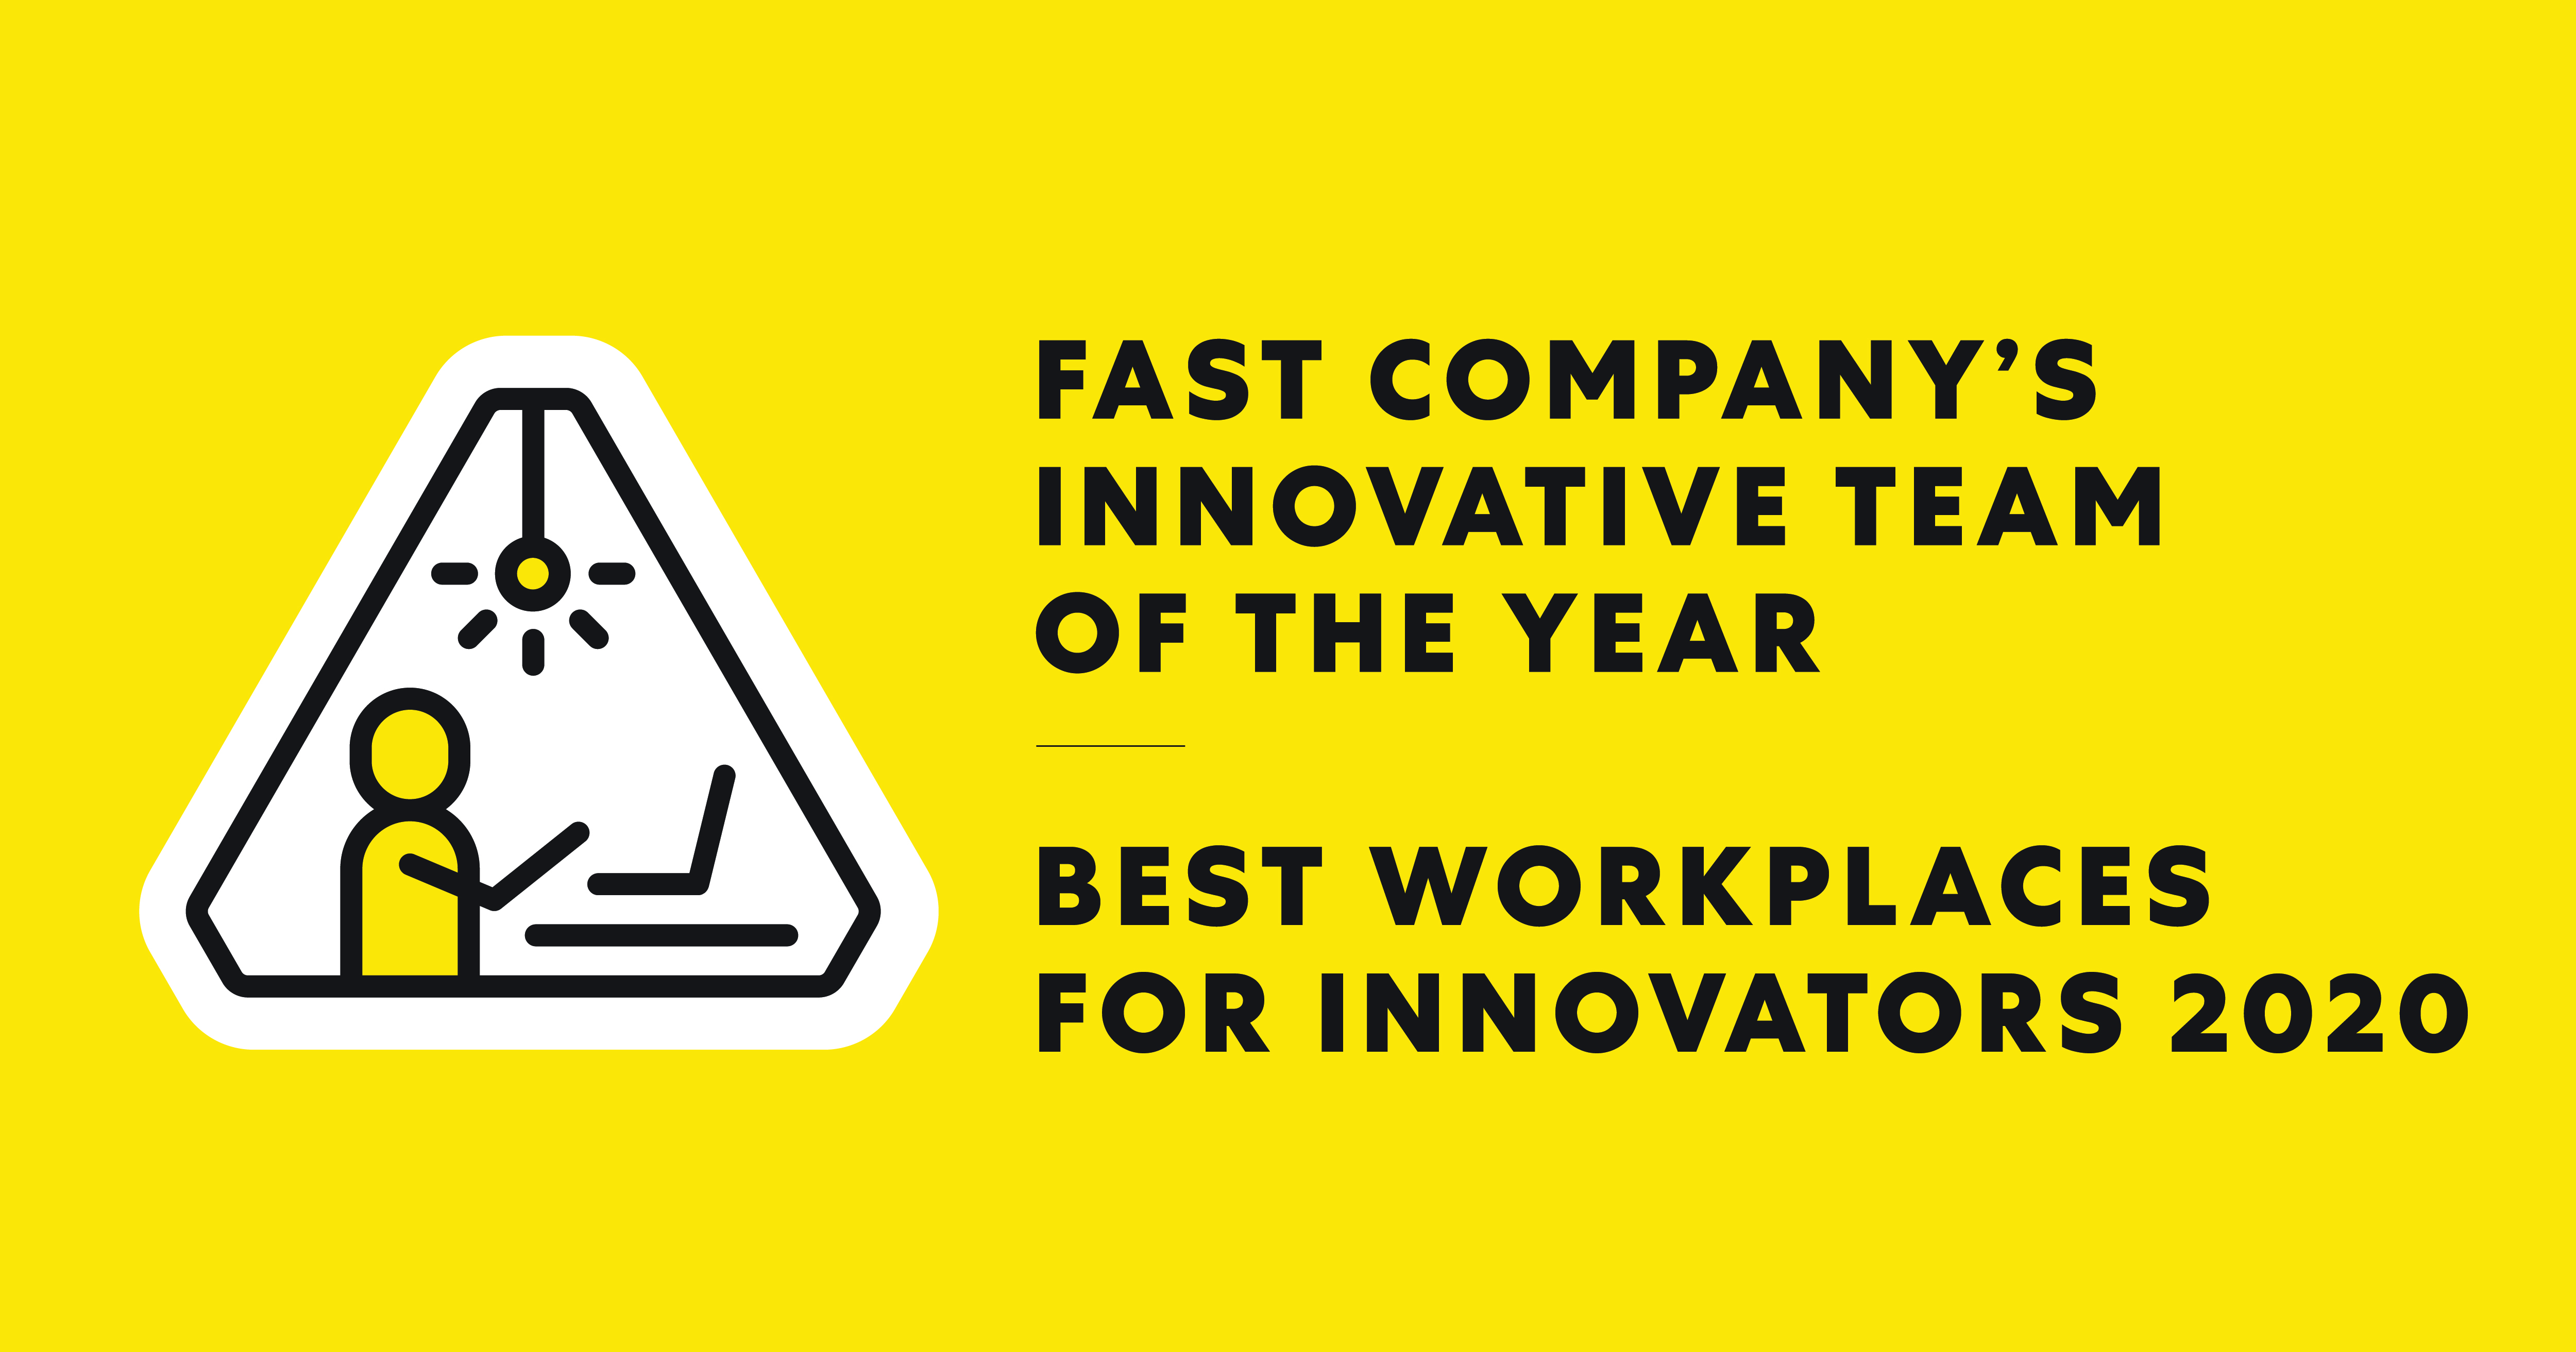 Cloudticity Named to Fast Company's First-Ever List of the Most Innovative Teams of the Year